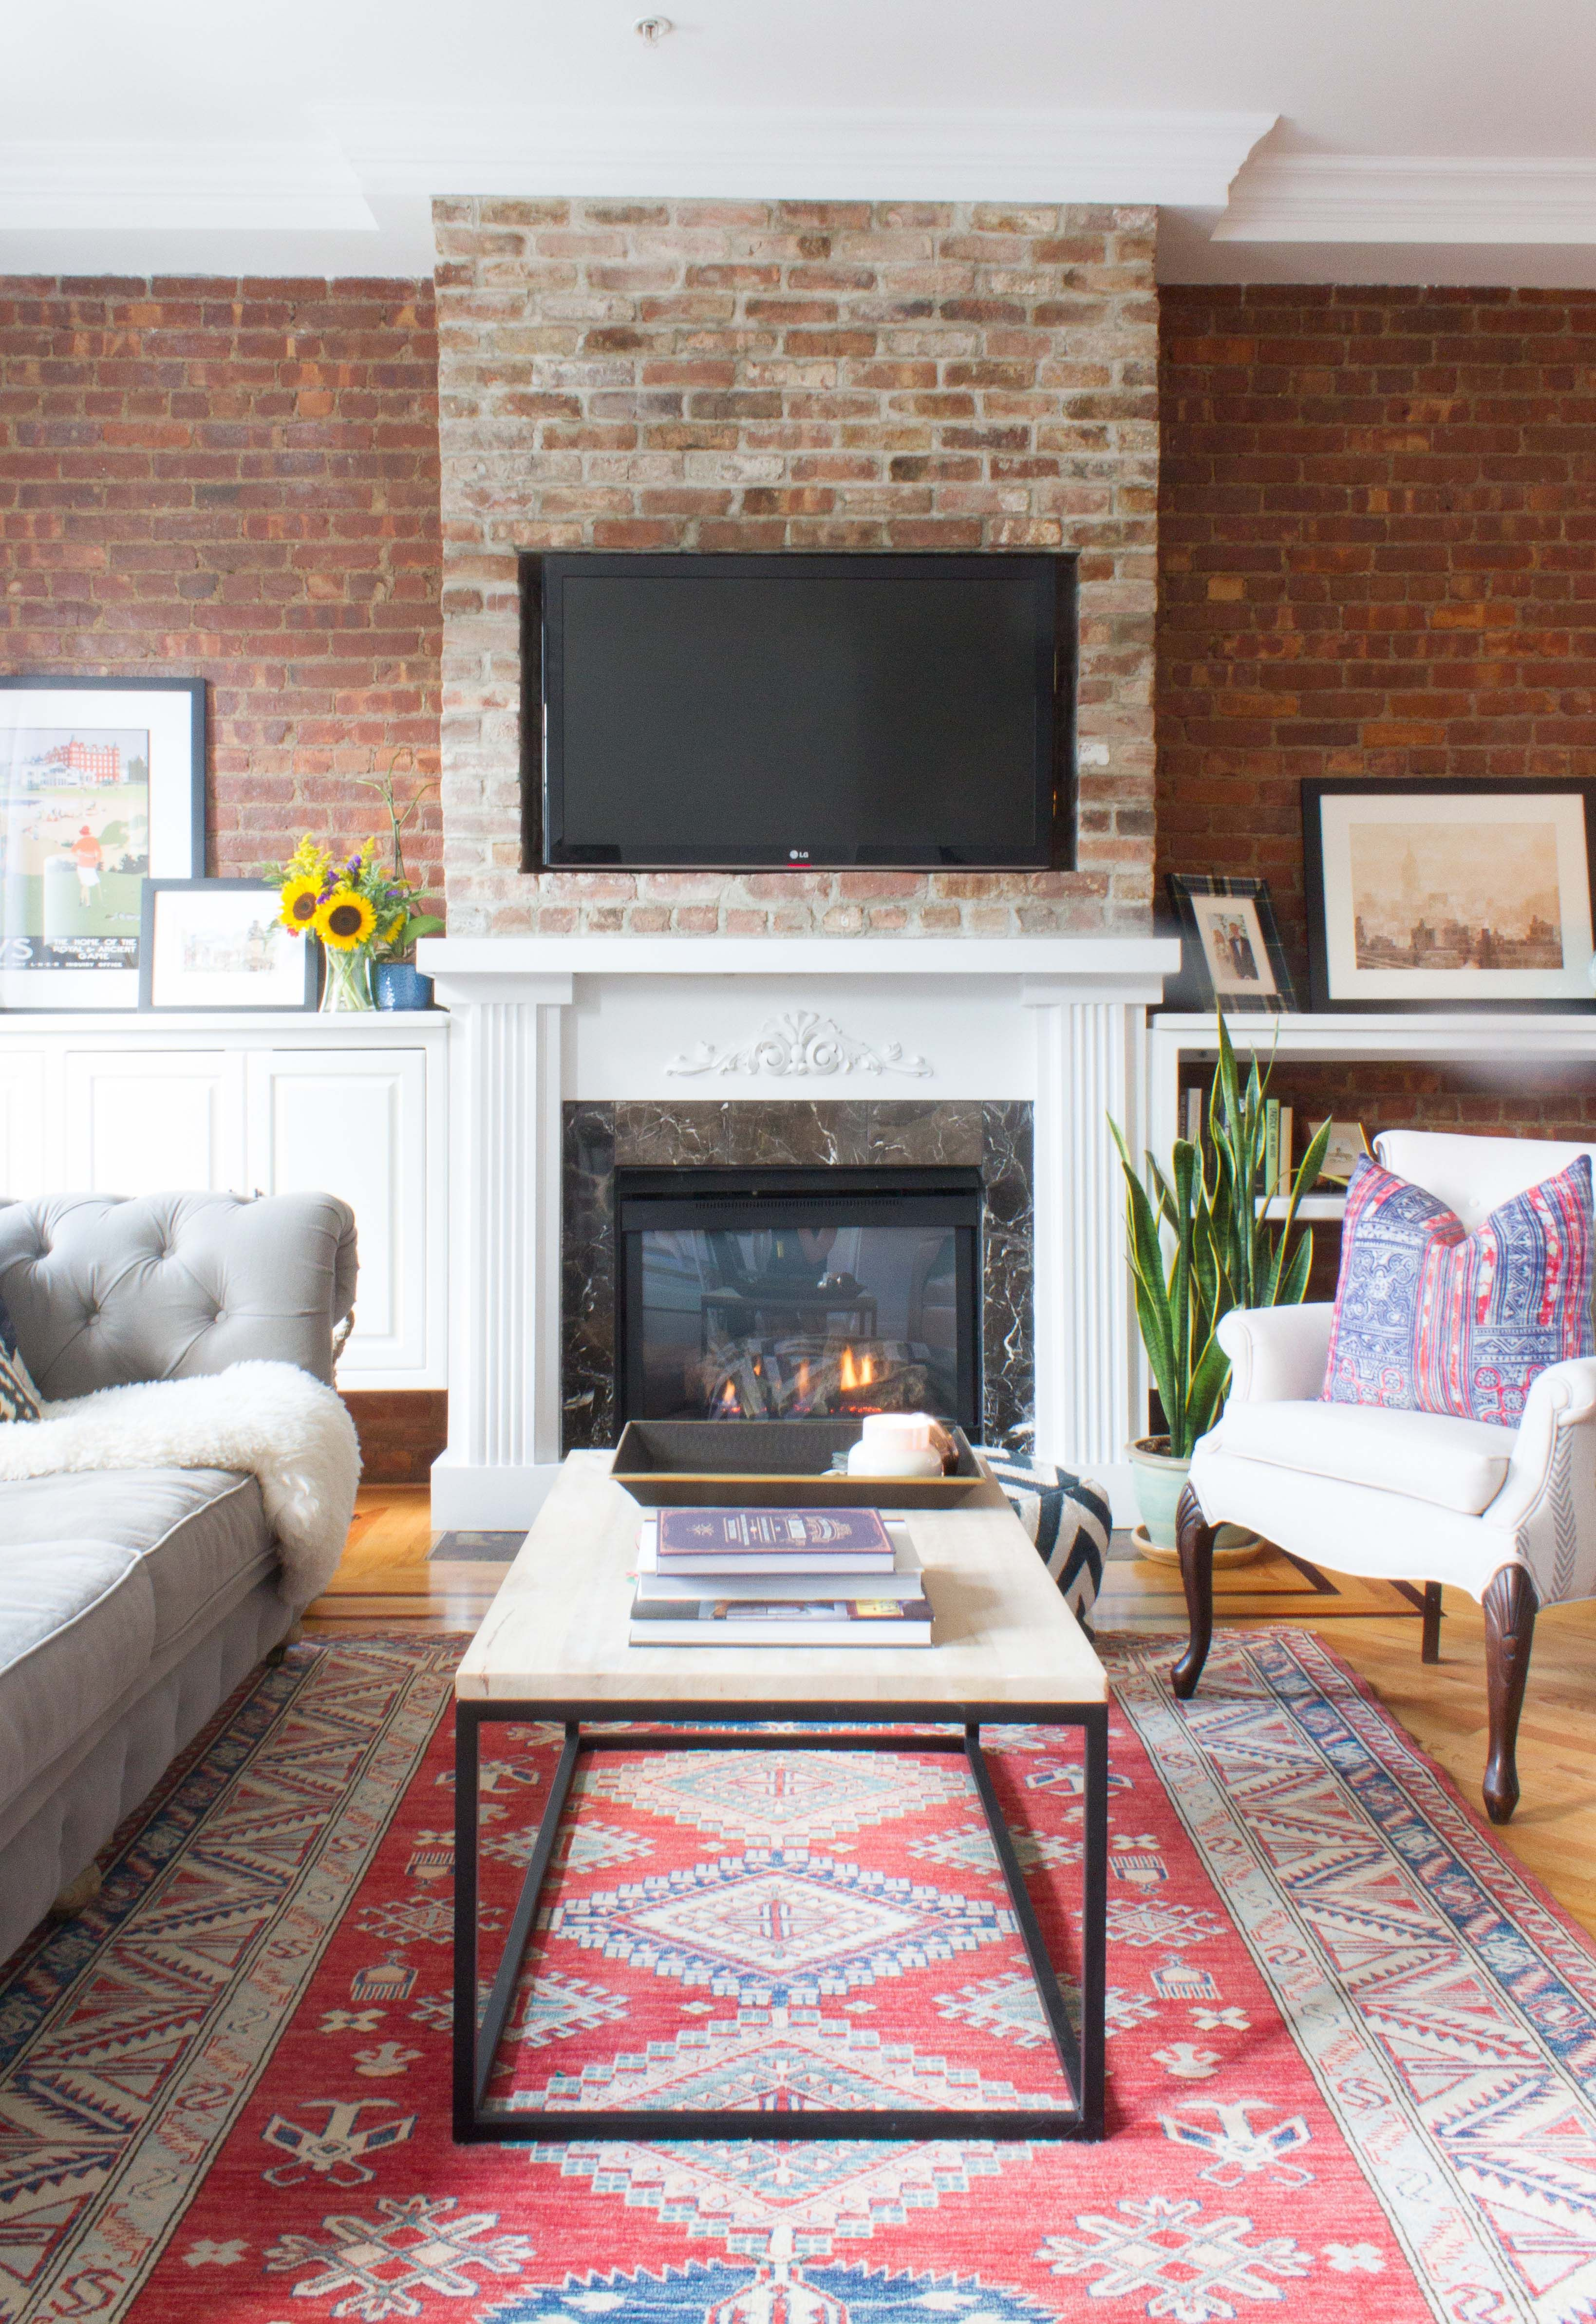 living room wall paint colors%0A The couple chose the area rug together  which features an abundance of  colors and is  Home DecoratingFamily Room DecoratingLiving Room IdeasModern